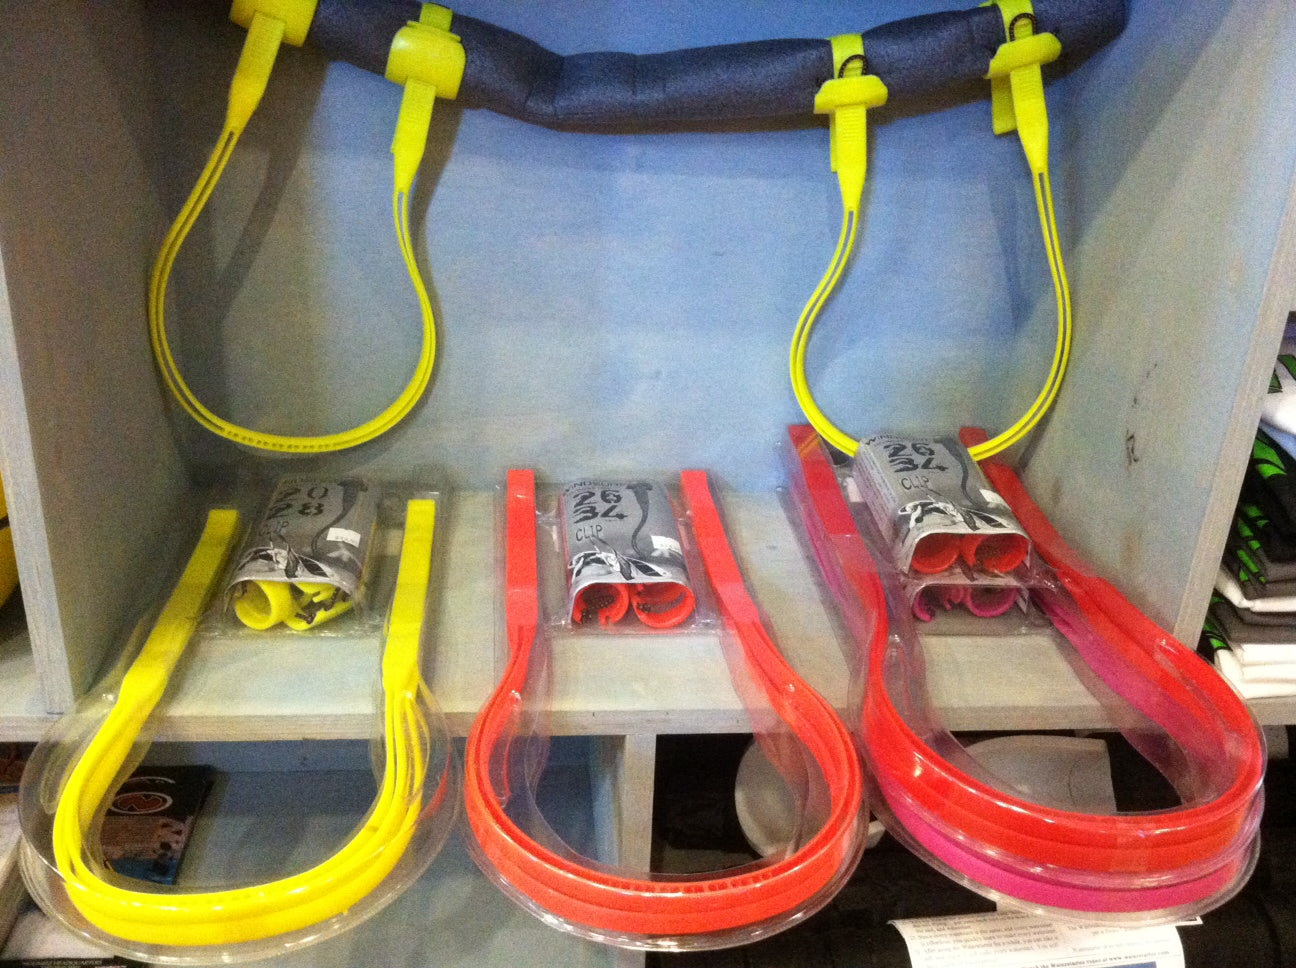 Windsurfing Equipment For Sale Page 3 Wind Nc Hinged Clamps Wiring Harness Clip Lines